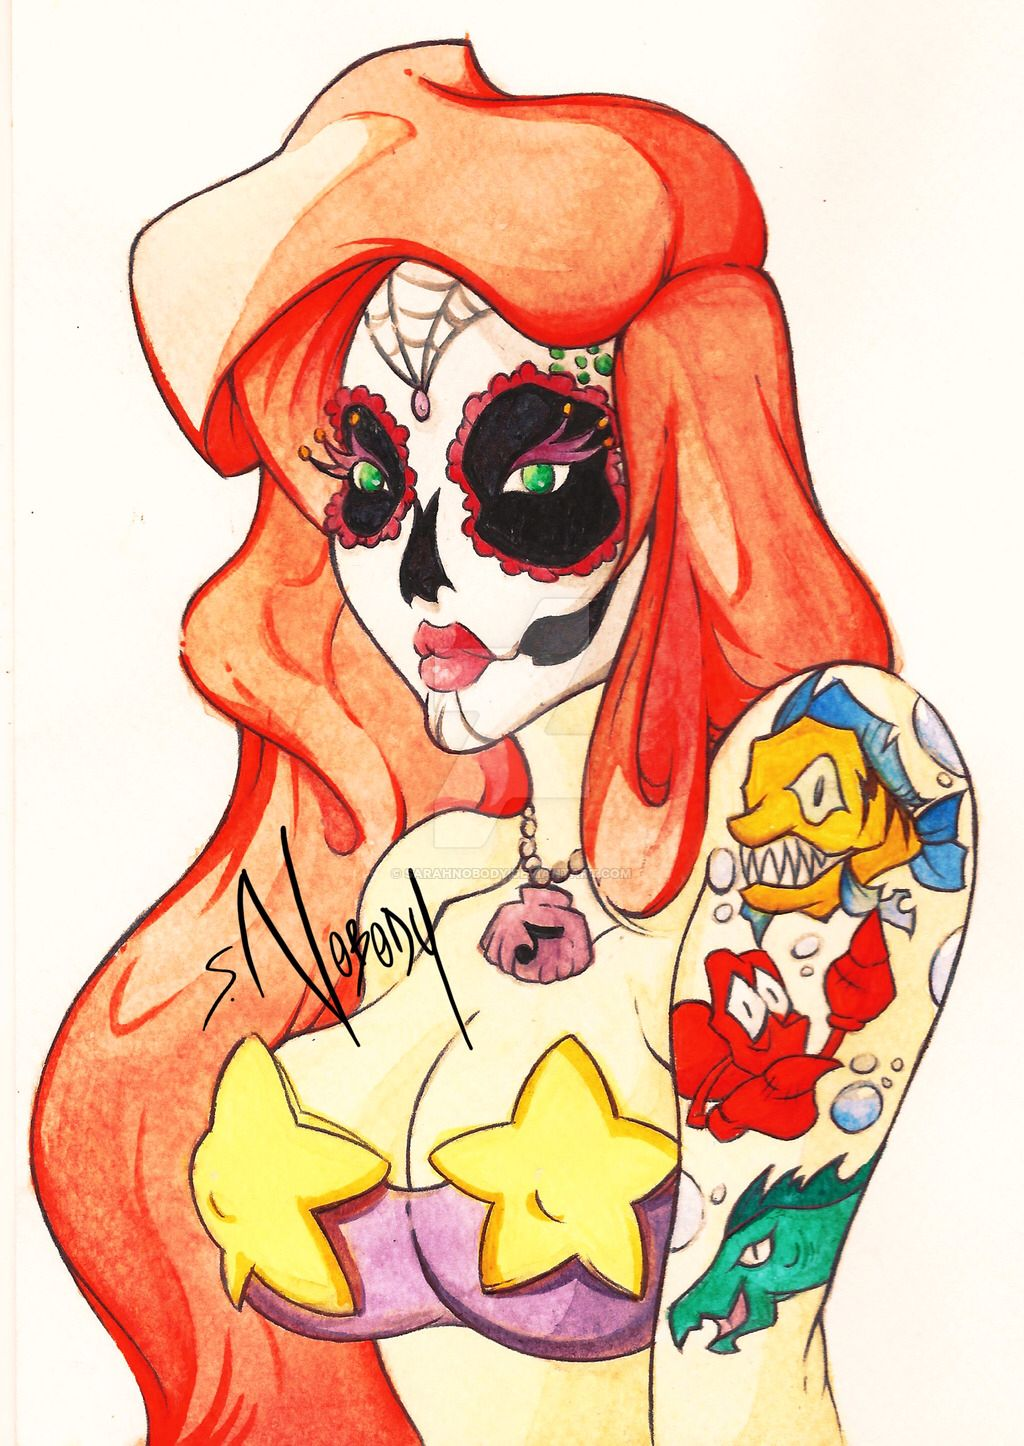 [Dead] Ariel. by SarahNOBODY on @DeviantArt